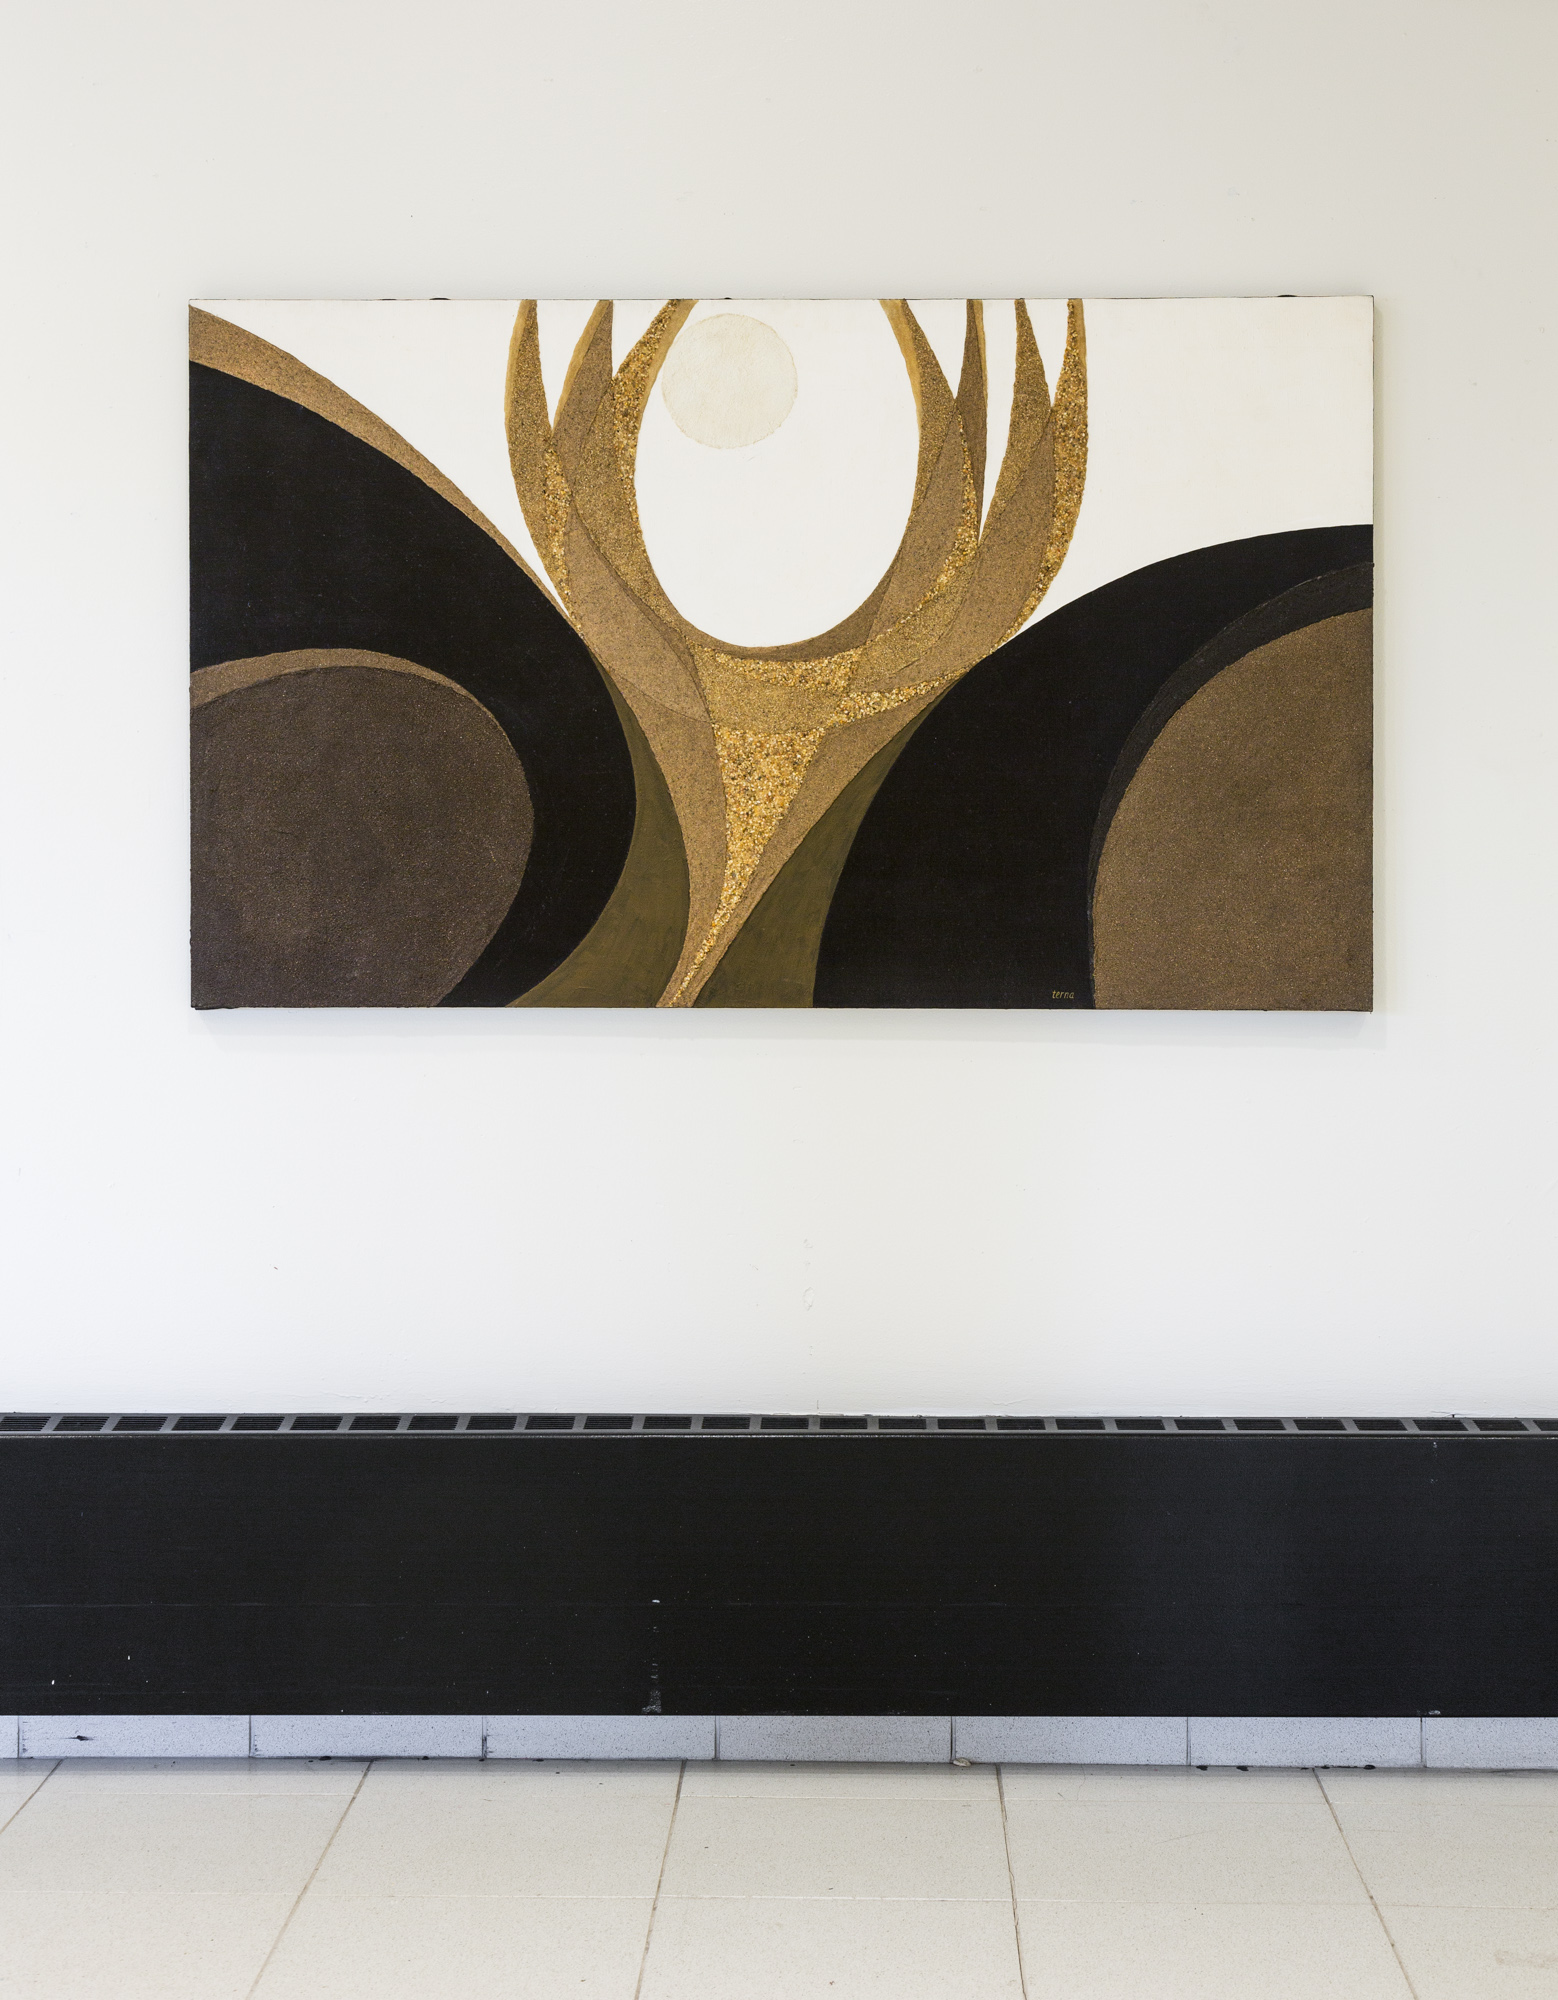 Fred Terna, Afterwards, Emergence , 1977, Acrylic and aggregates on canvas, 36 x 60 inches